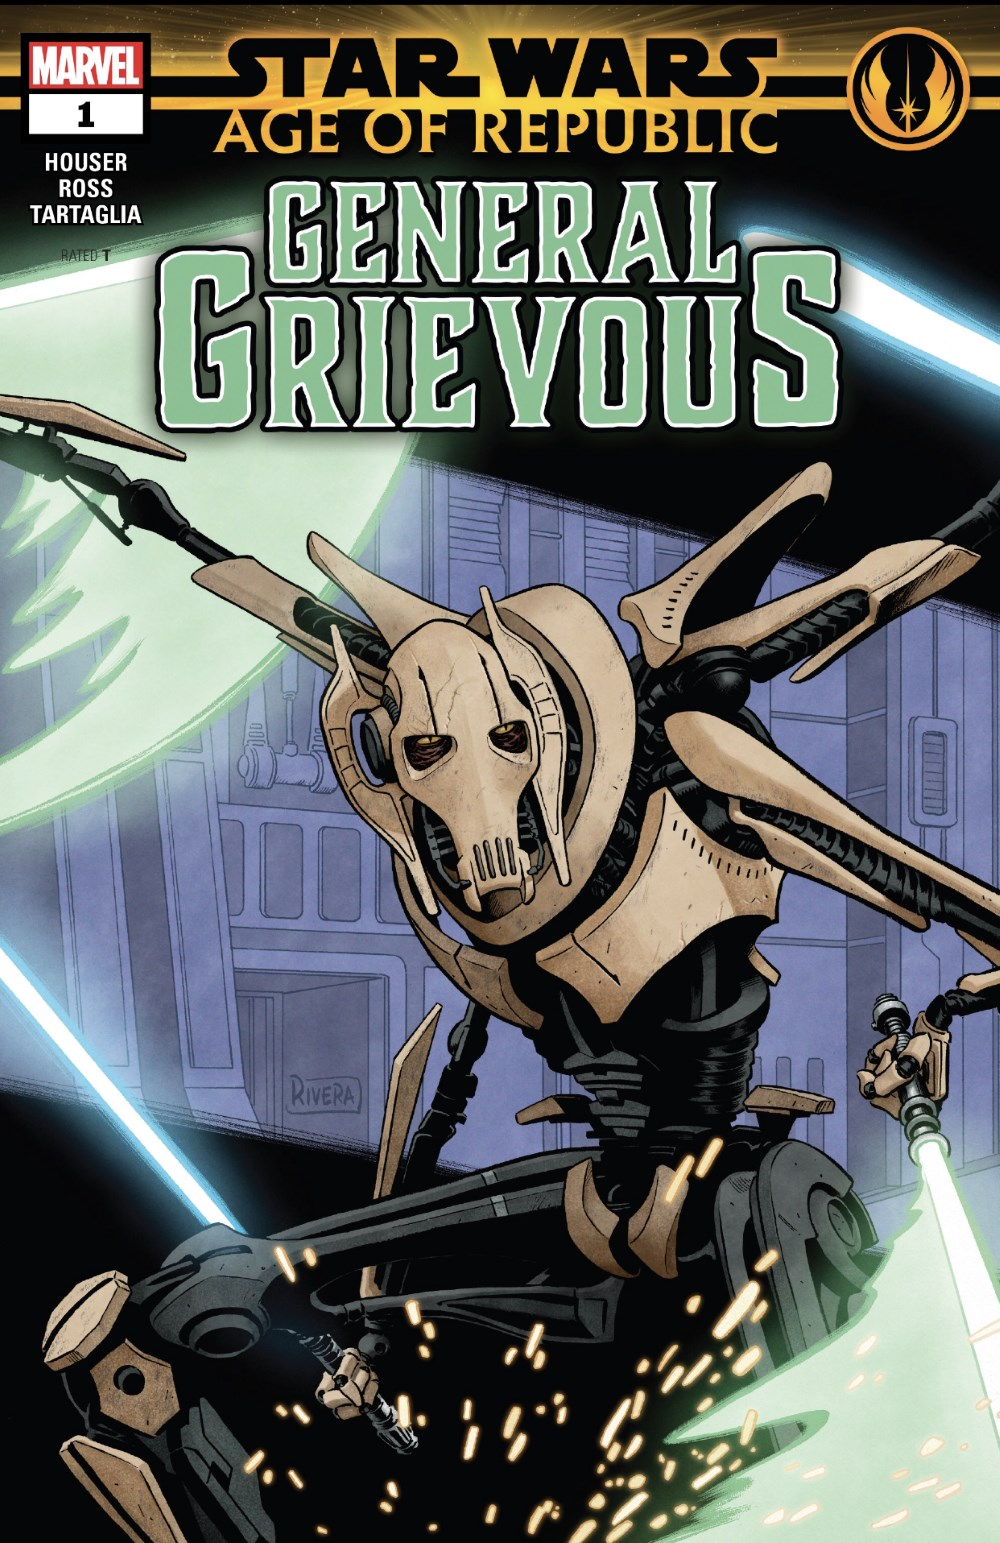 Star Wars; Age of Republic - General Grievous #1 Cover